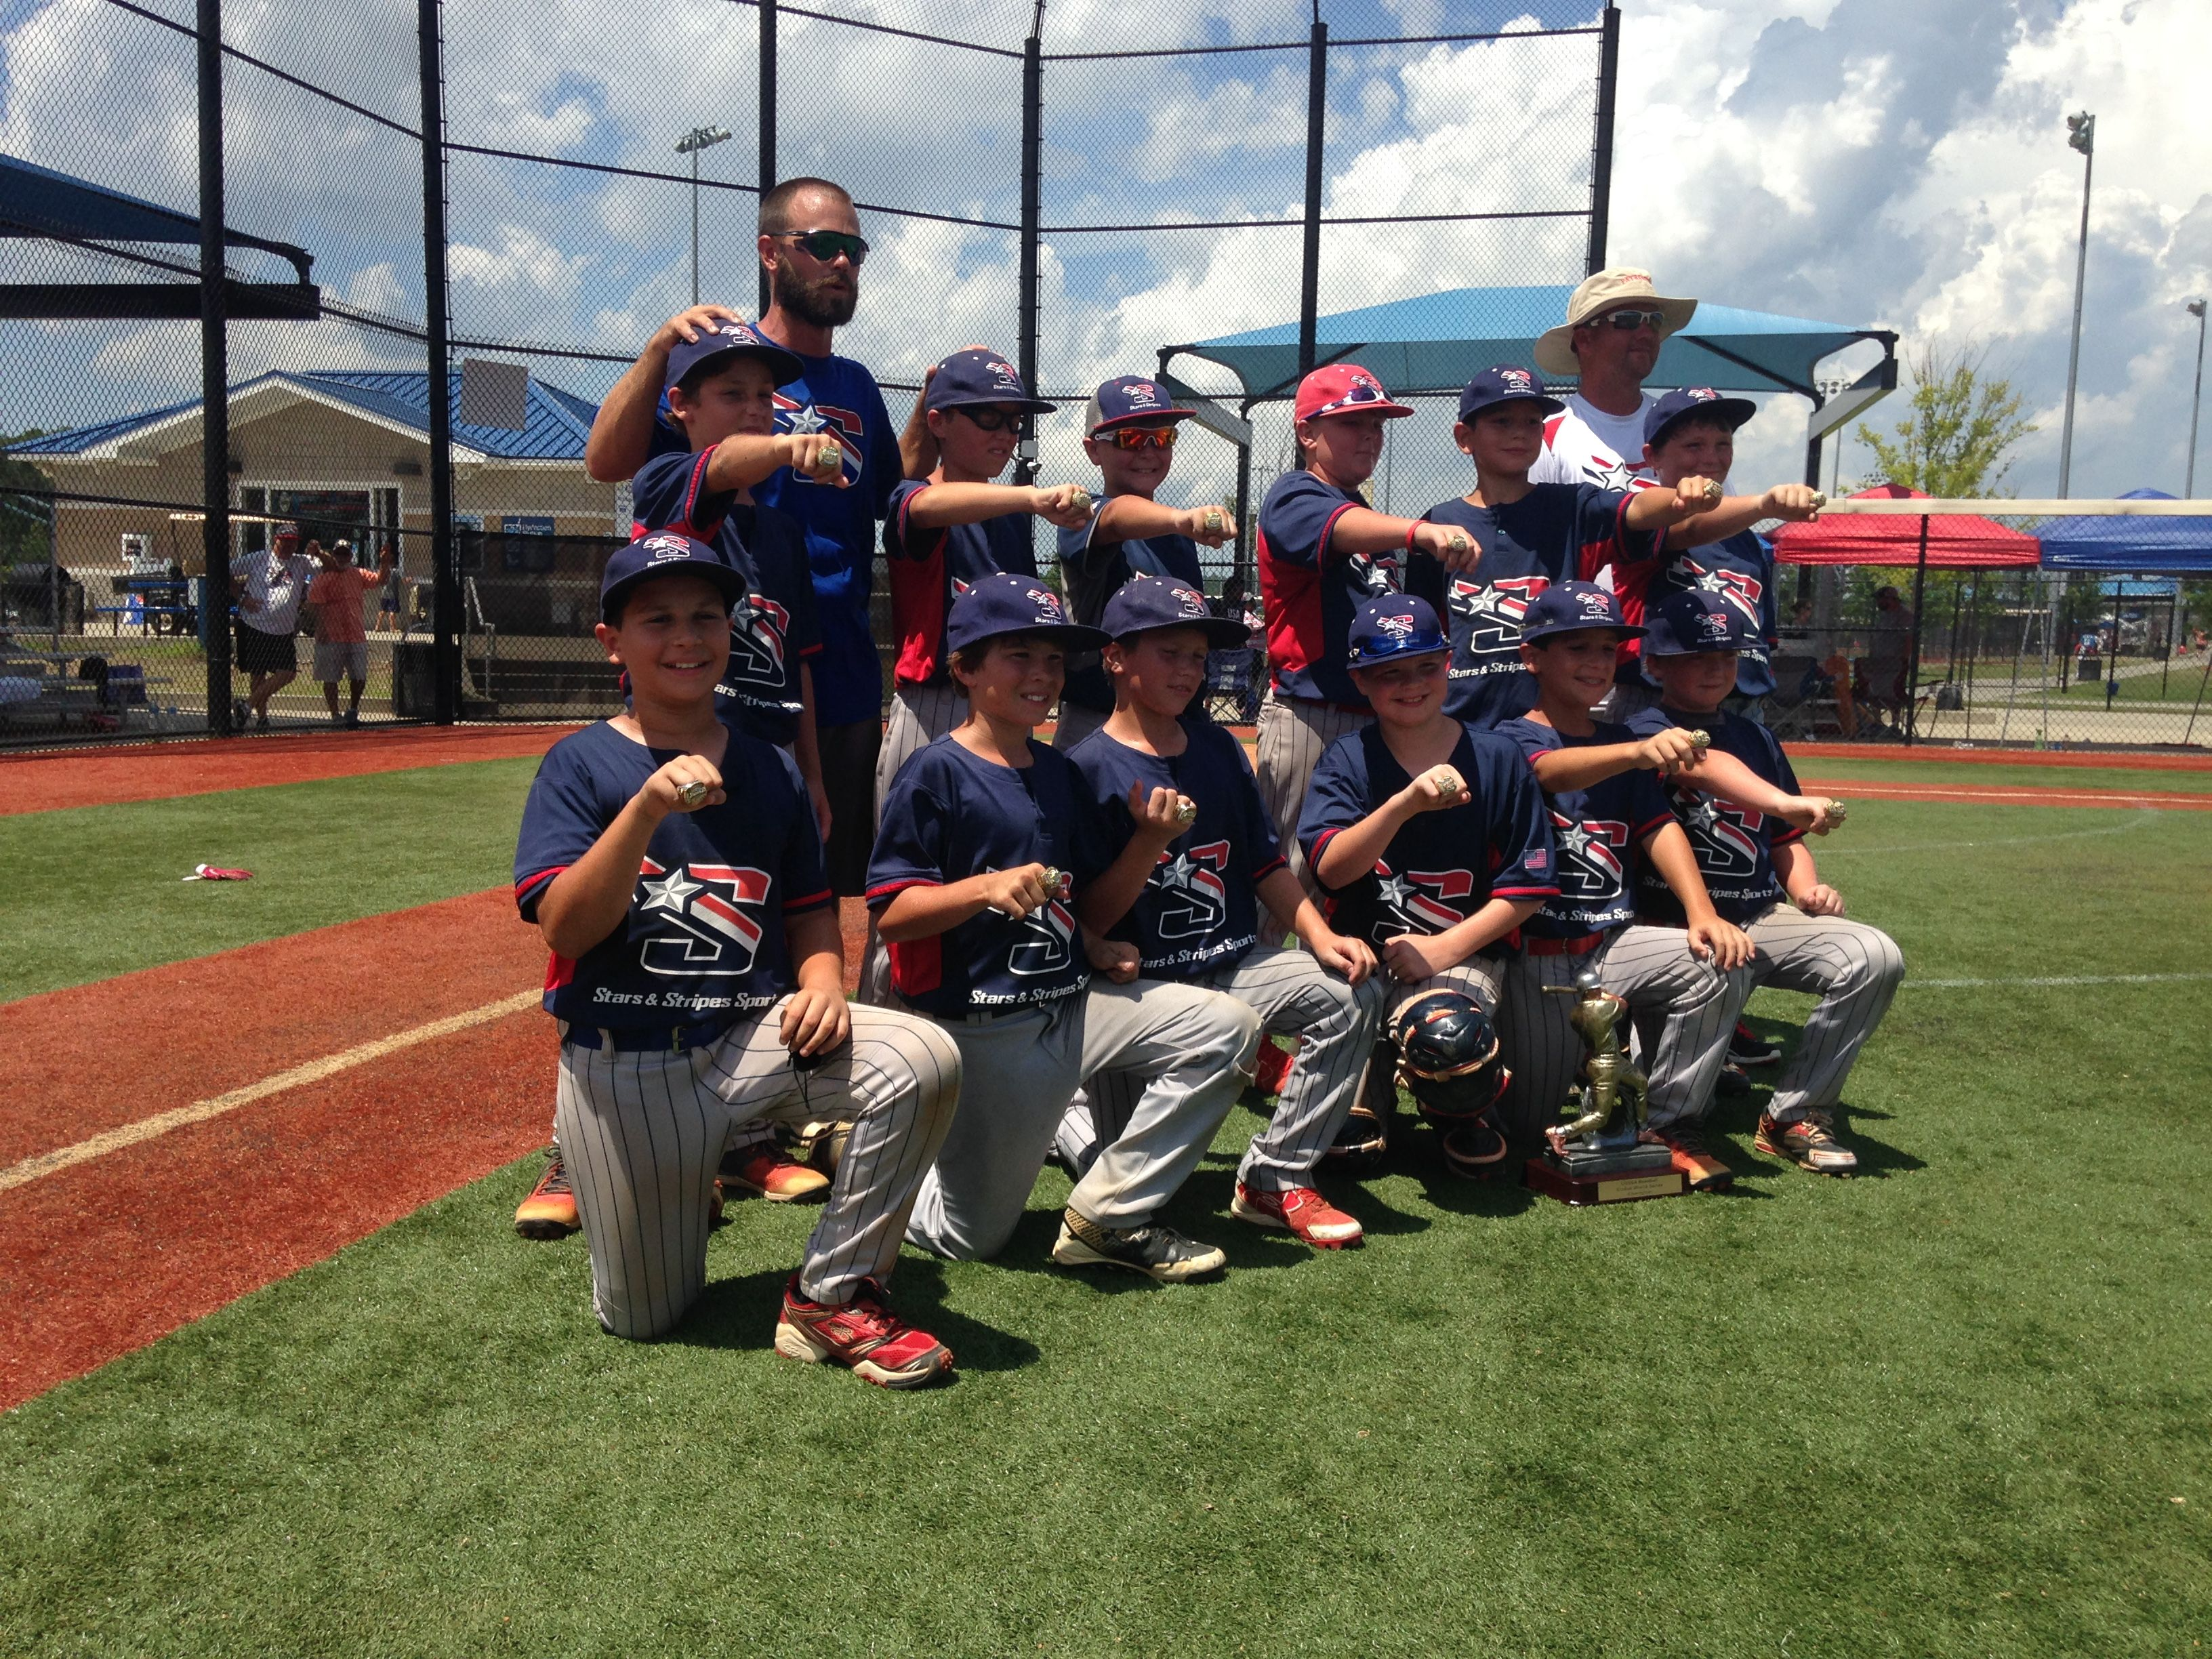 Columbia Sc Stars And Stripes Patriots Win Usssa Global World Series In Myrtle Beach Myrtle Beach Columbia Sc Global World